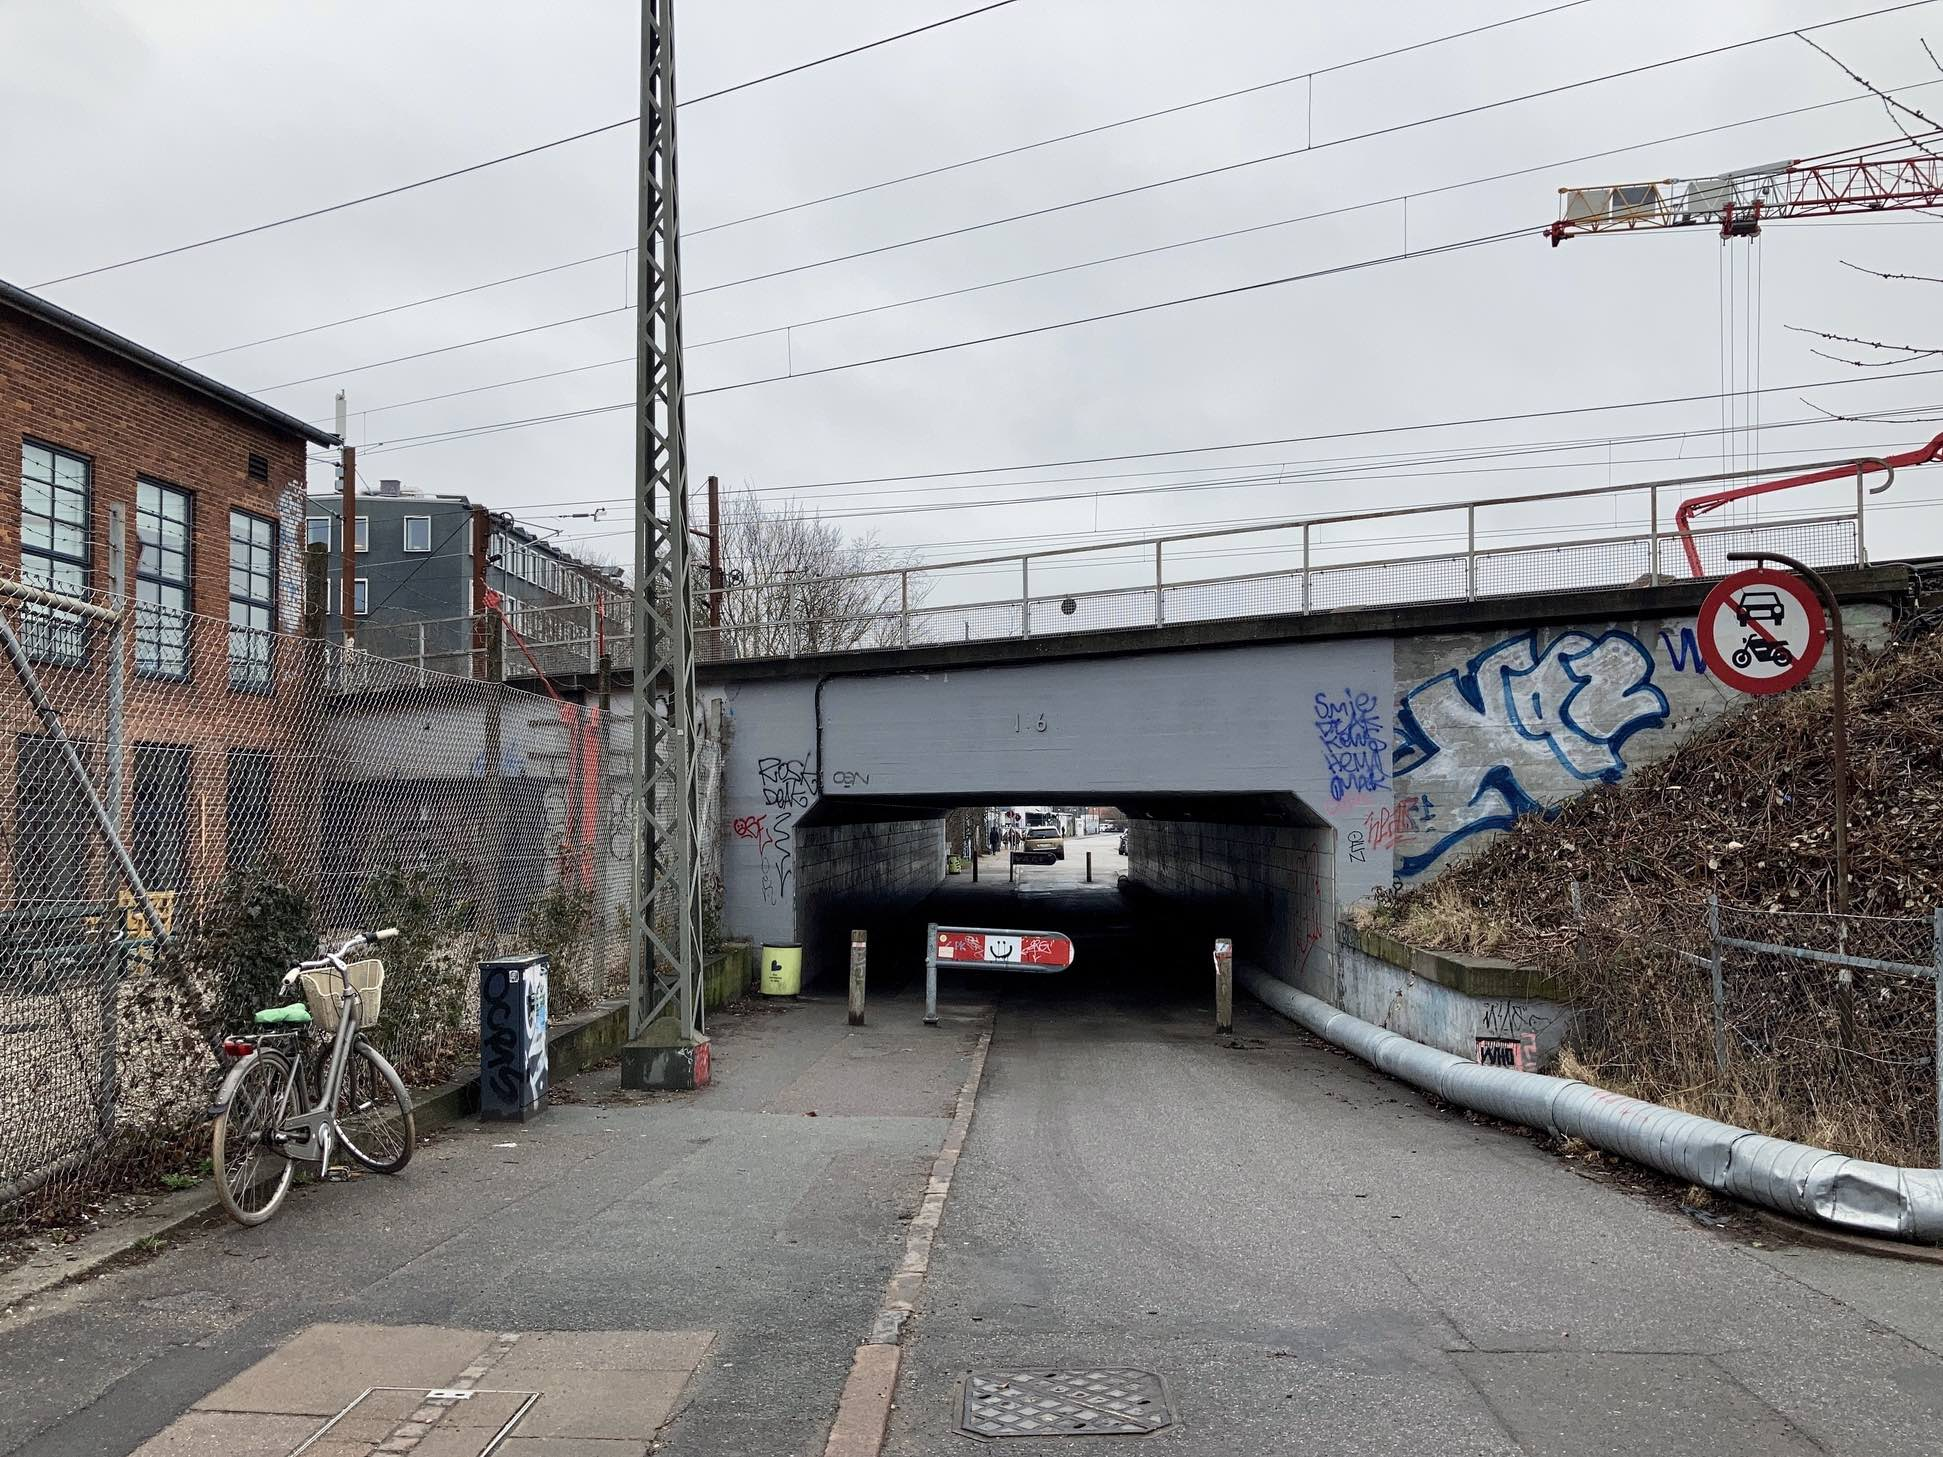 Tunnel under the tracks on a grey Monday morning. A bicycle. Chain fence. Smiling face on the restriction thingy. Graffiti. Dented pipe on the ground. Red outline of the no cars or motorcycles sign.